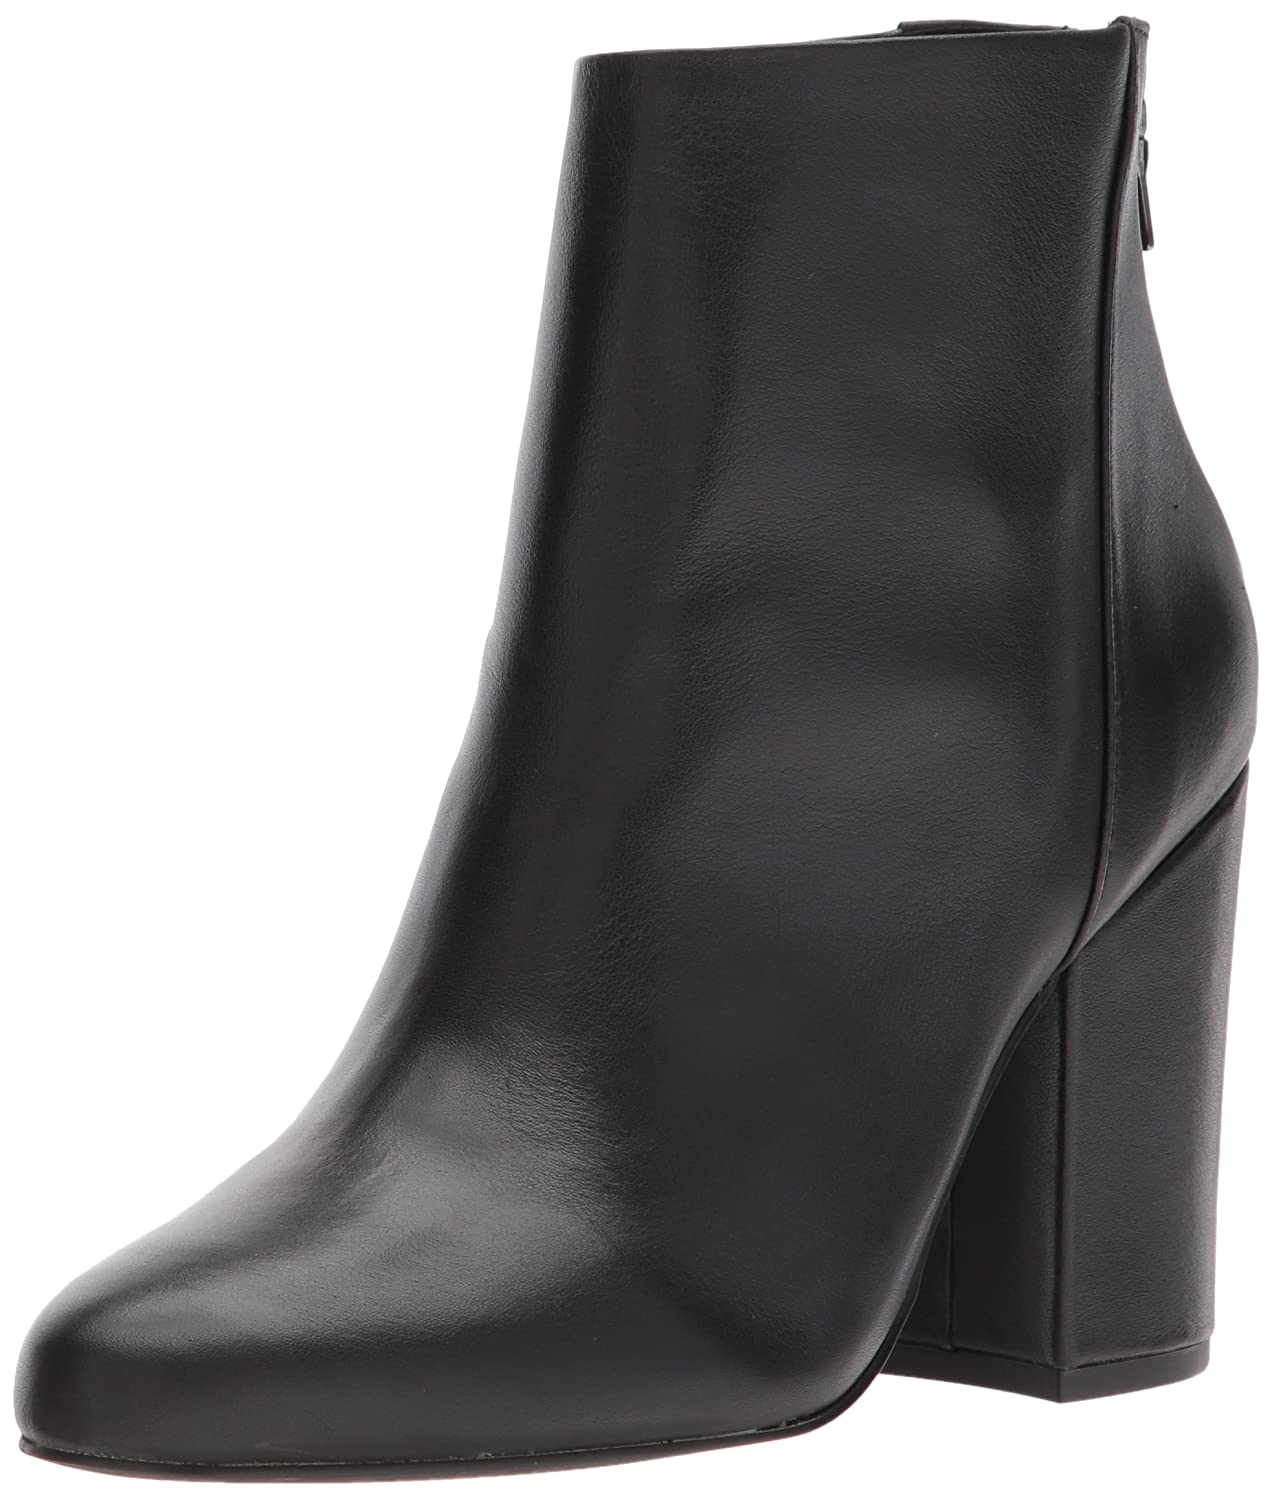 Steve Madden Women's Star Ankle Boot B073ZK4MGL 6.5 B(M) US|Black Leather